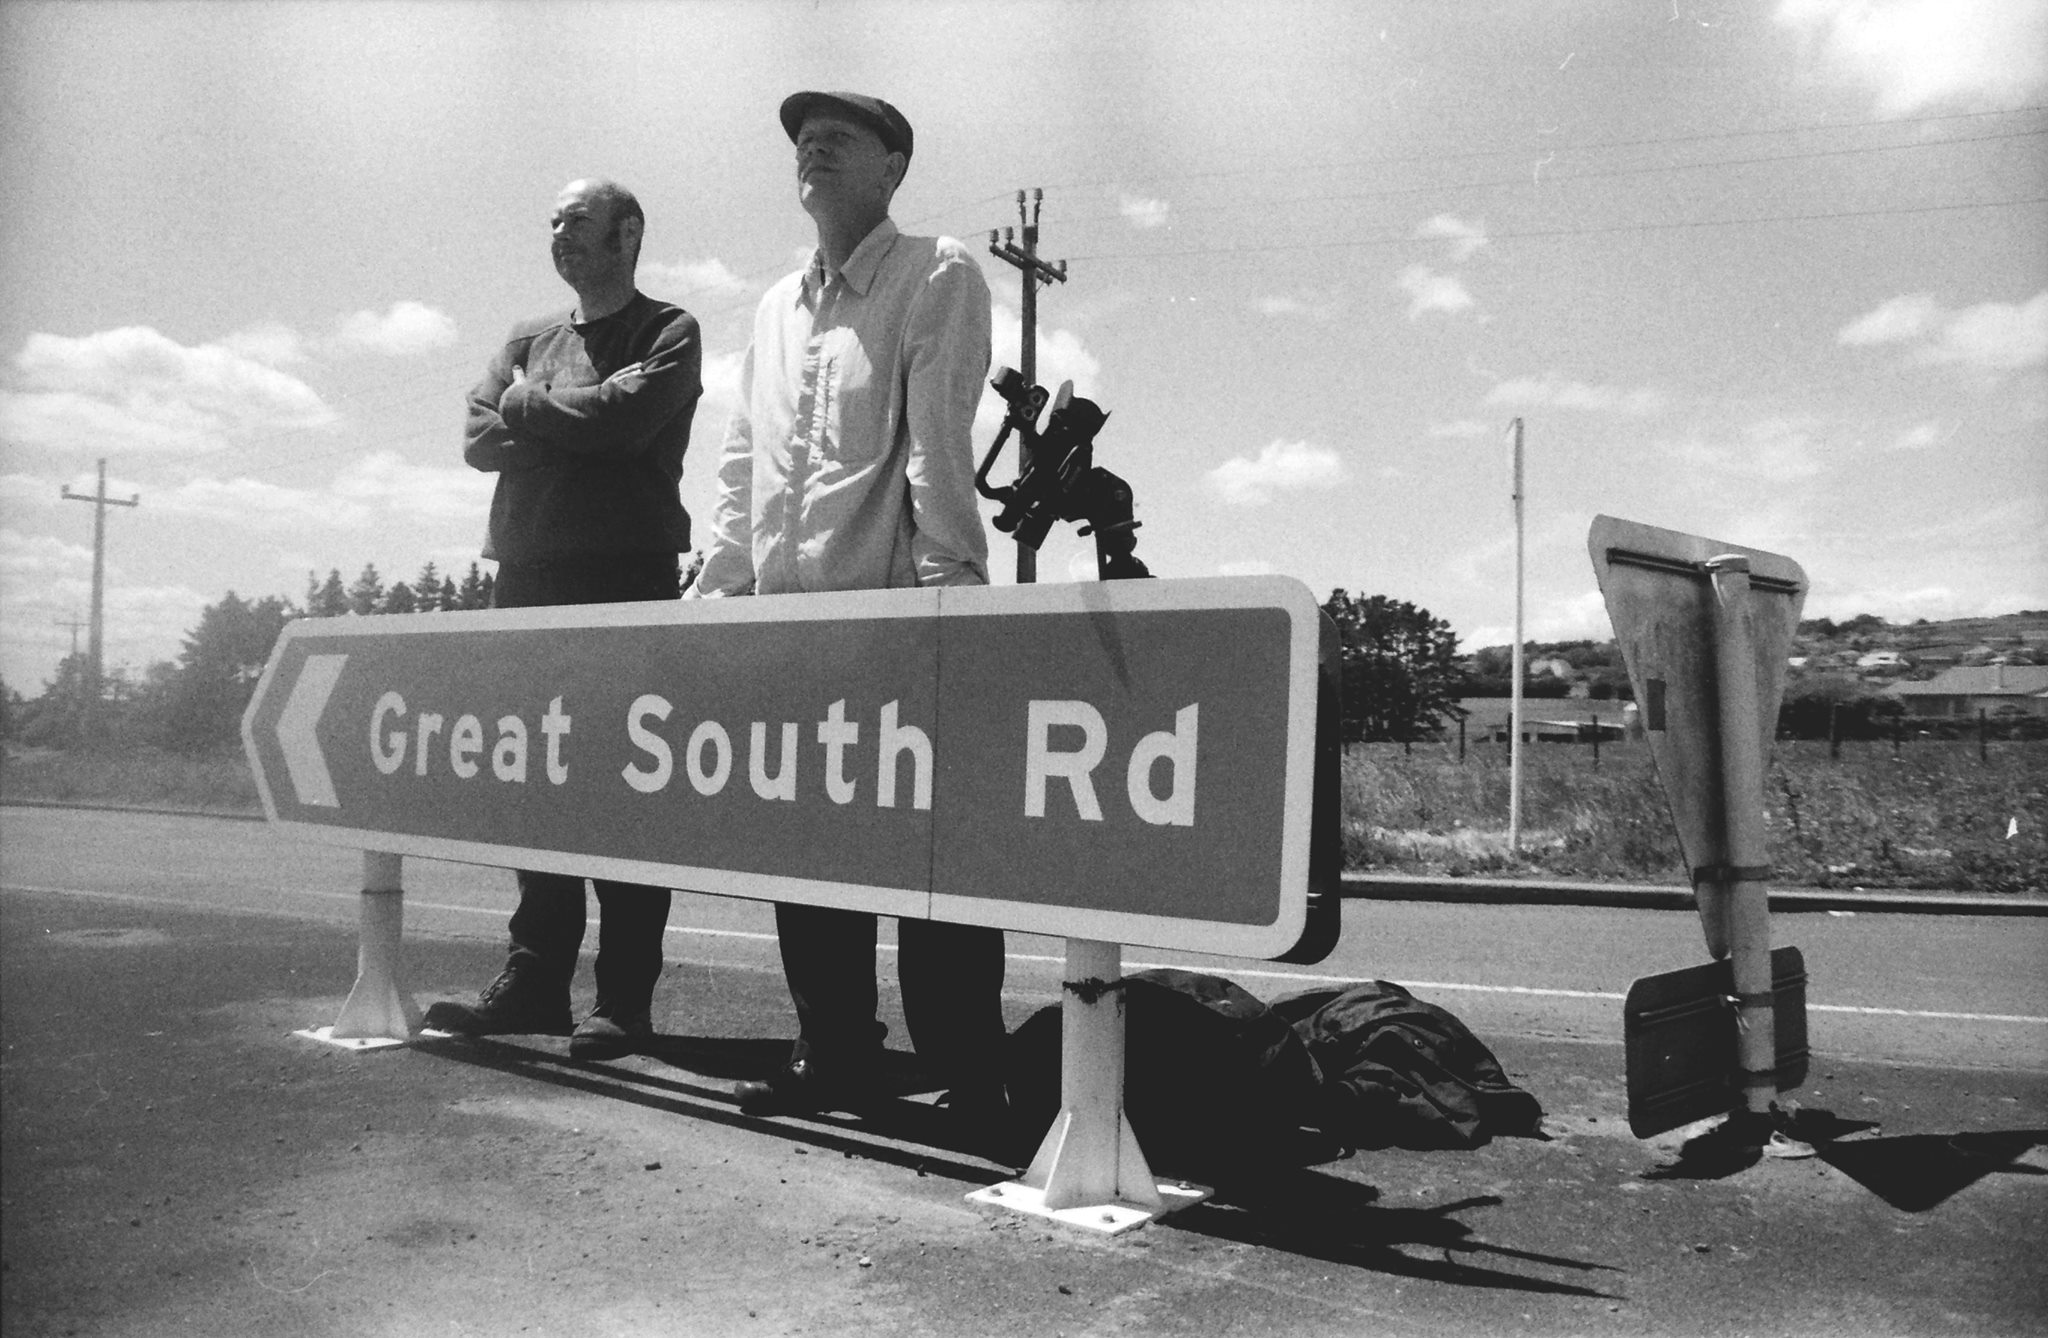 The inaugural Tōia Talks lecture featured filmmaker, Paul Janman and historian, Scott Hamilton who discussed their feature documentary, 'Fragments of the Great South Road' and screen footage from the film.